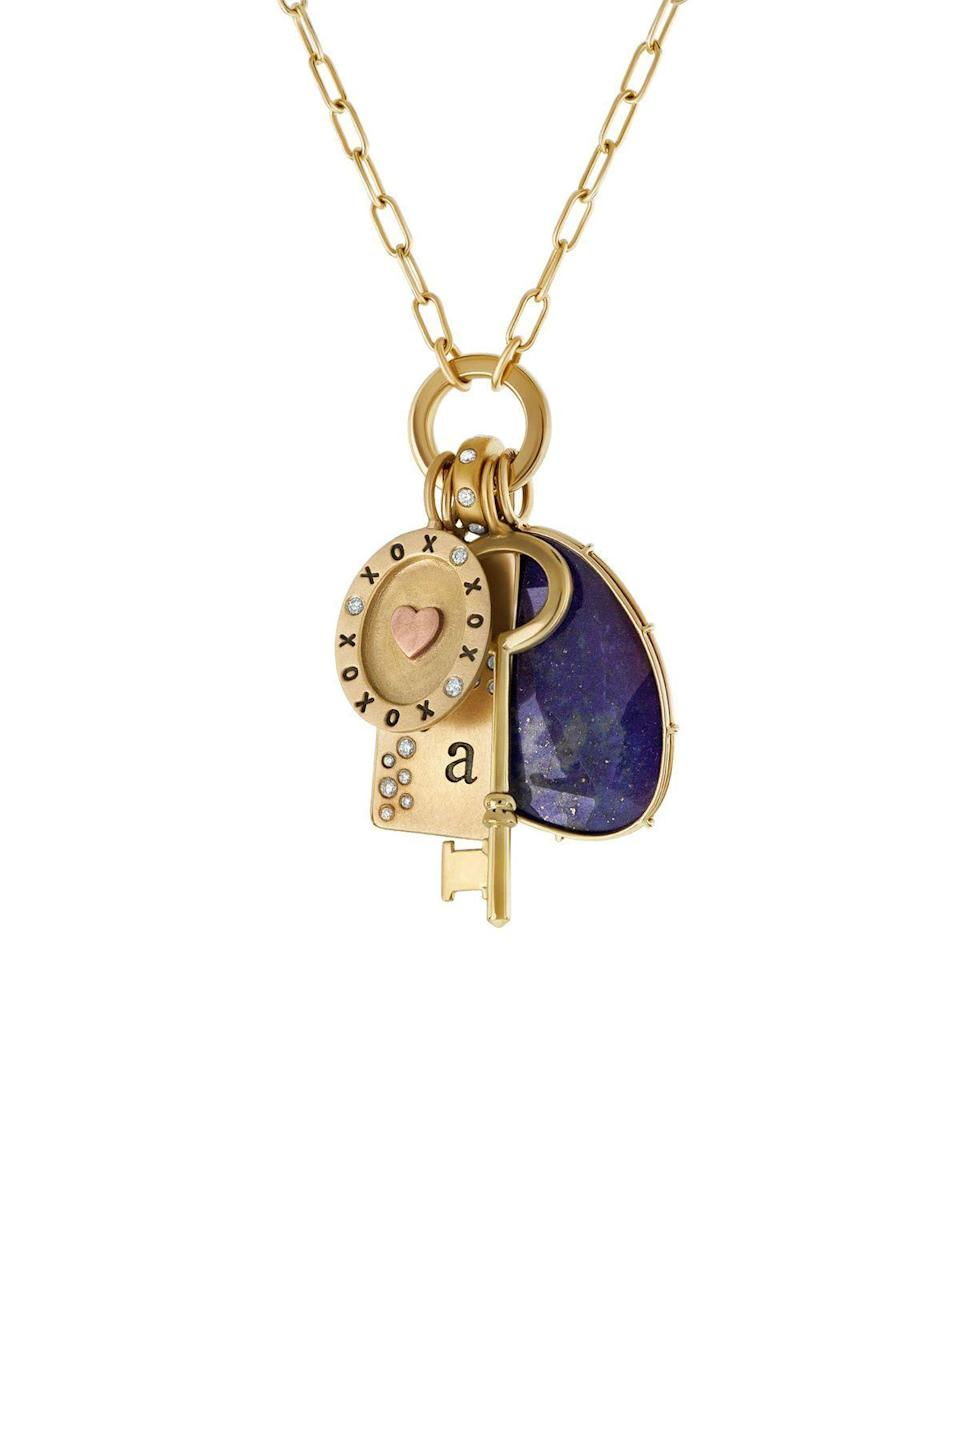 """<p><strong>Heather B Moore</strong></p><p>heatherbmoore.com</p><p><strong>$6322.00</strong></p><p><a href=""""https://heatherbmoore.com/collections/necklaces/products/styled-necklace-135"""" rel=""""nofollow noopener"""" target=""""_blank"""" data-ylk=""""slk:Shop Now"""" class=""""link rapid-noclick-resp"""">Shop Now</a></p><p>All of Heather B. Moore's jewelry is handmade in her studio in Cleveland, Ohio. She is also committed to sustainability, using only 100% recycled metals in her designs.</p>"""